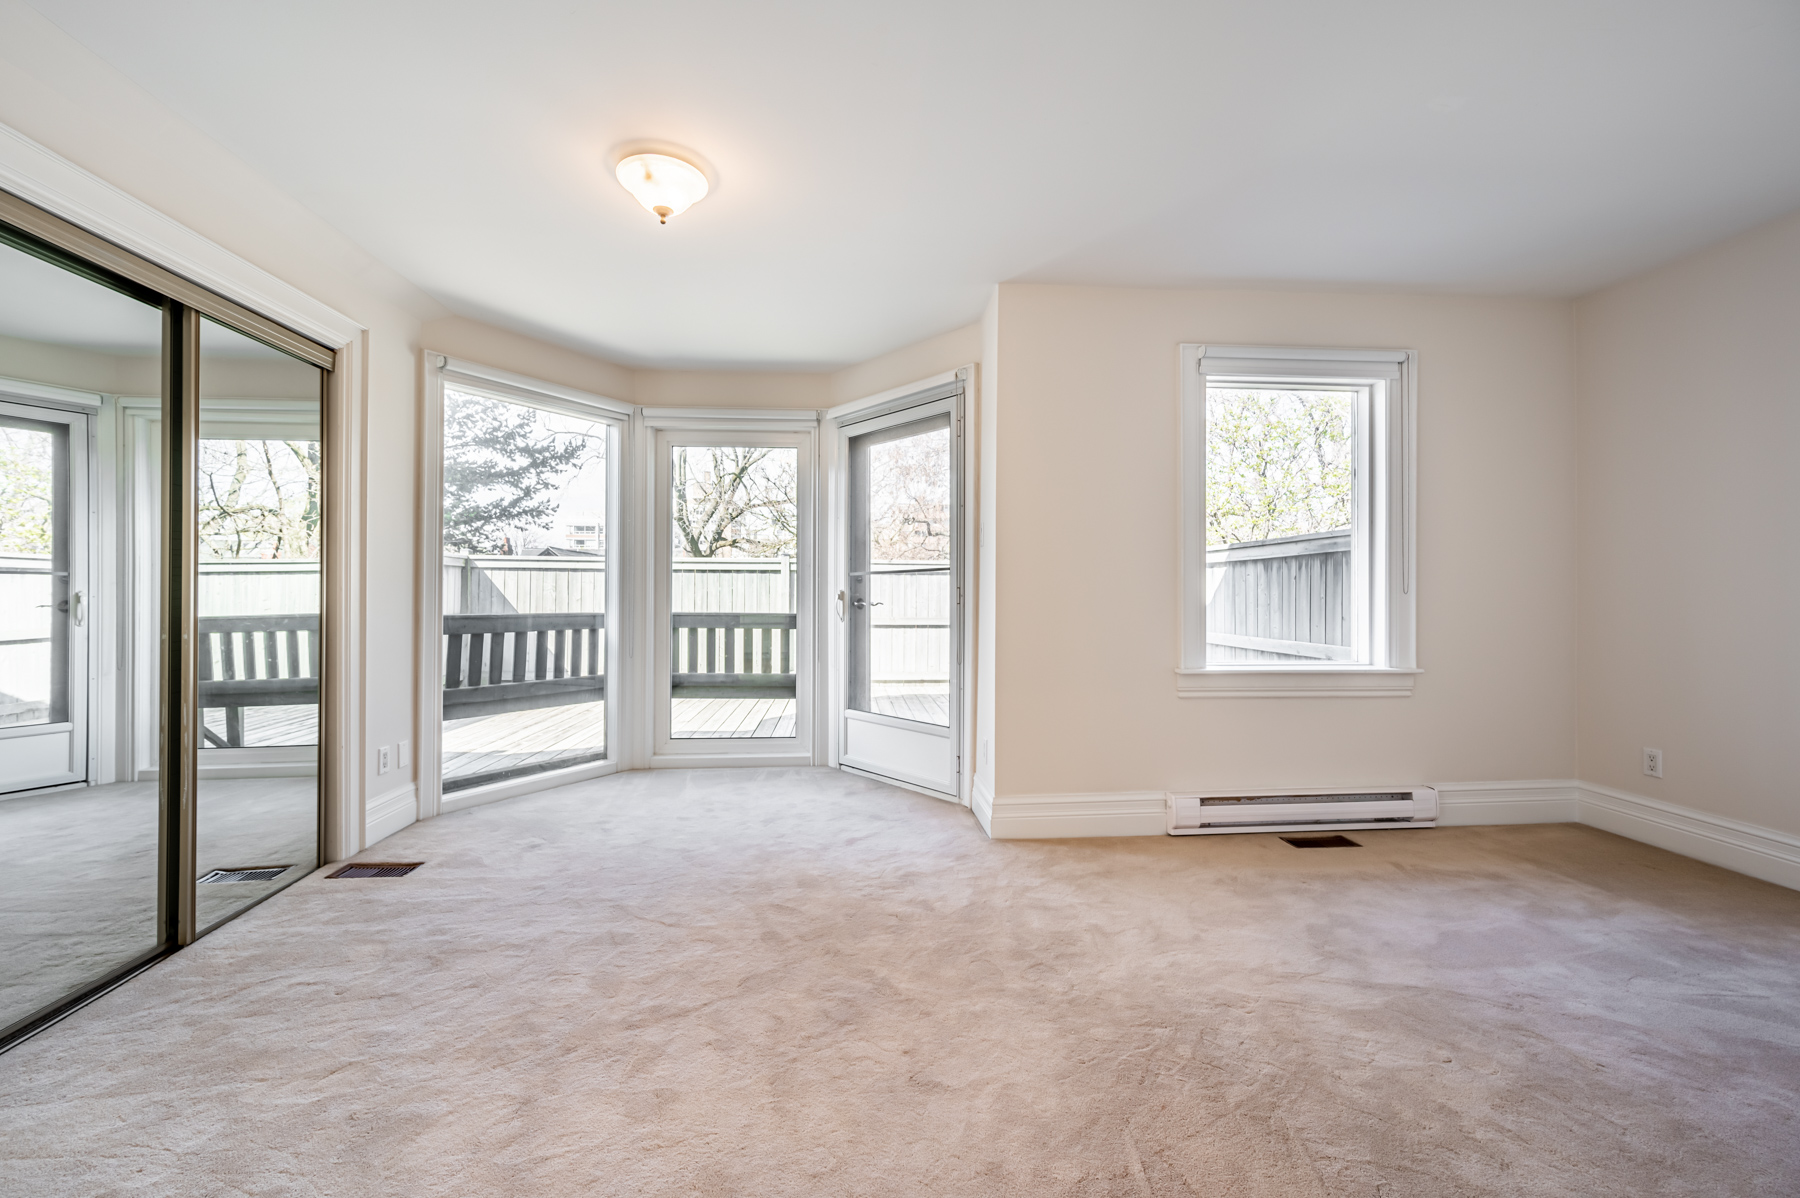 98 Bedford Rd master bedroom with walk-out deck.